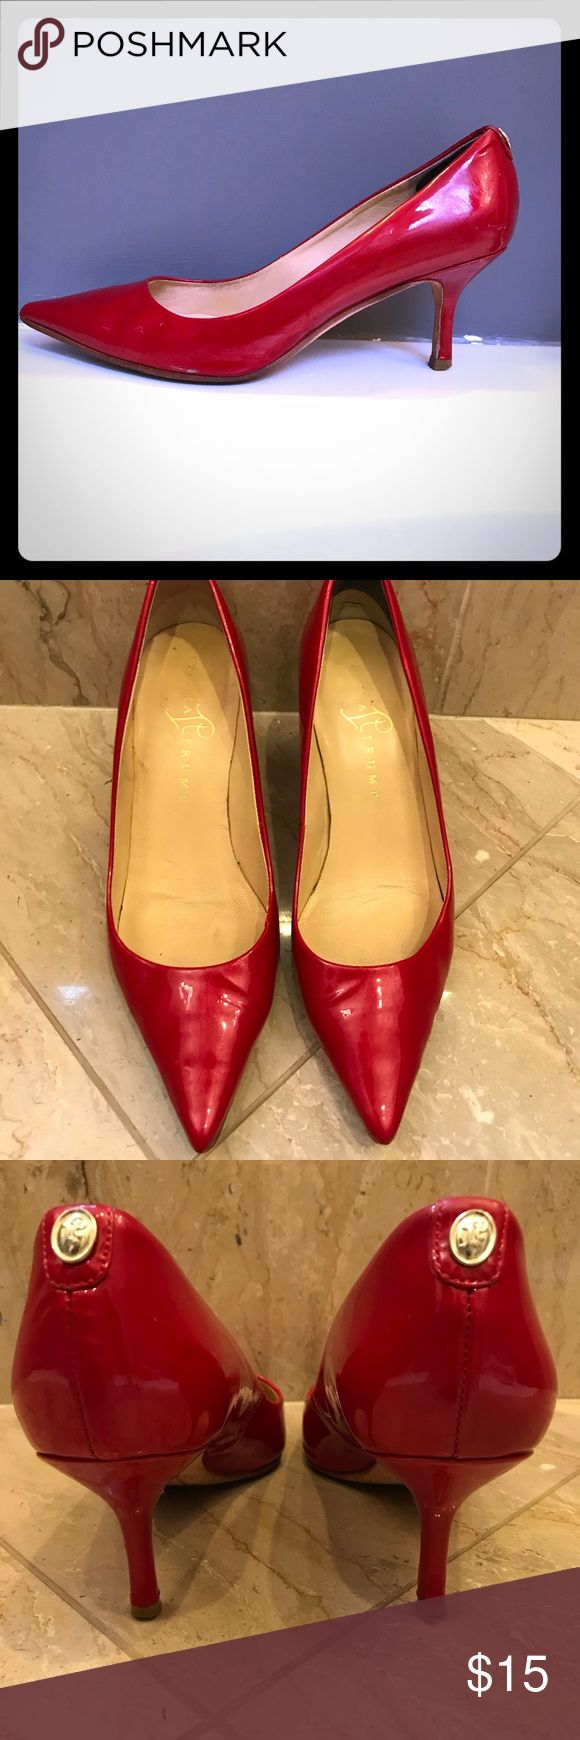 Red pumps!! These red patent leather pumps will add a pop of color to any outfit. 2.5 inch stiletto-style heel. Surprisingly comfortable and easy to walk in. Pre-loved condition, but still plenty of life. Ivanka Trump Shoes Heels